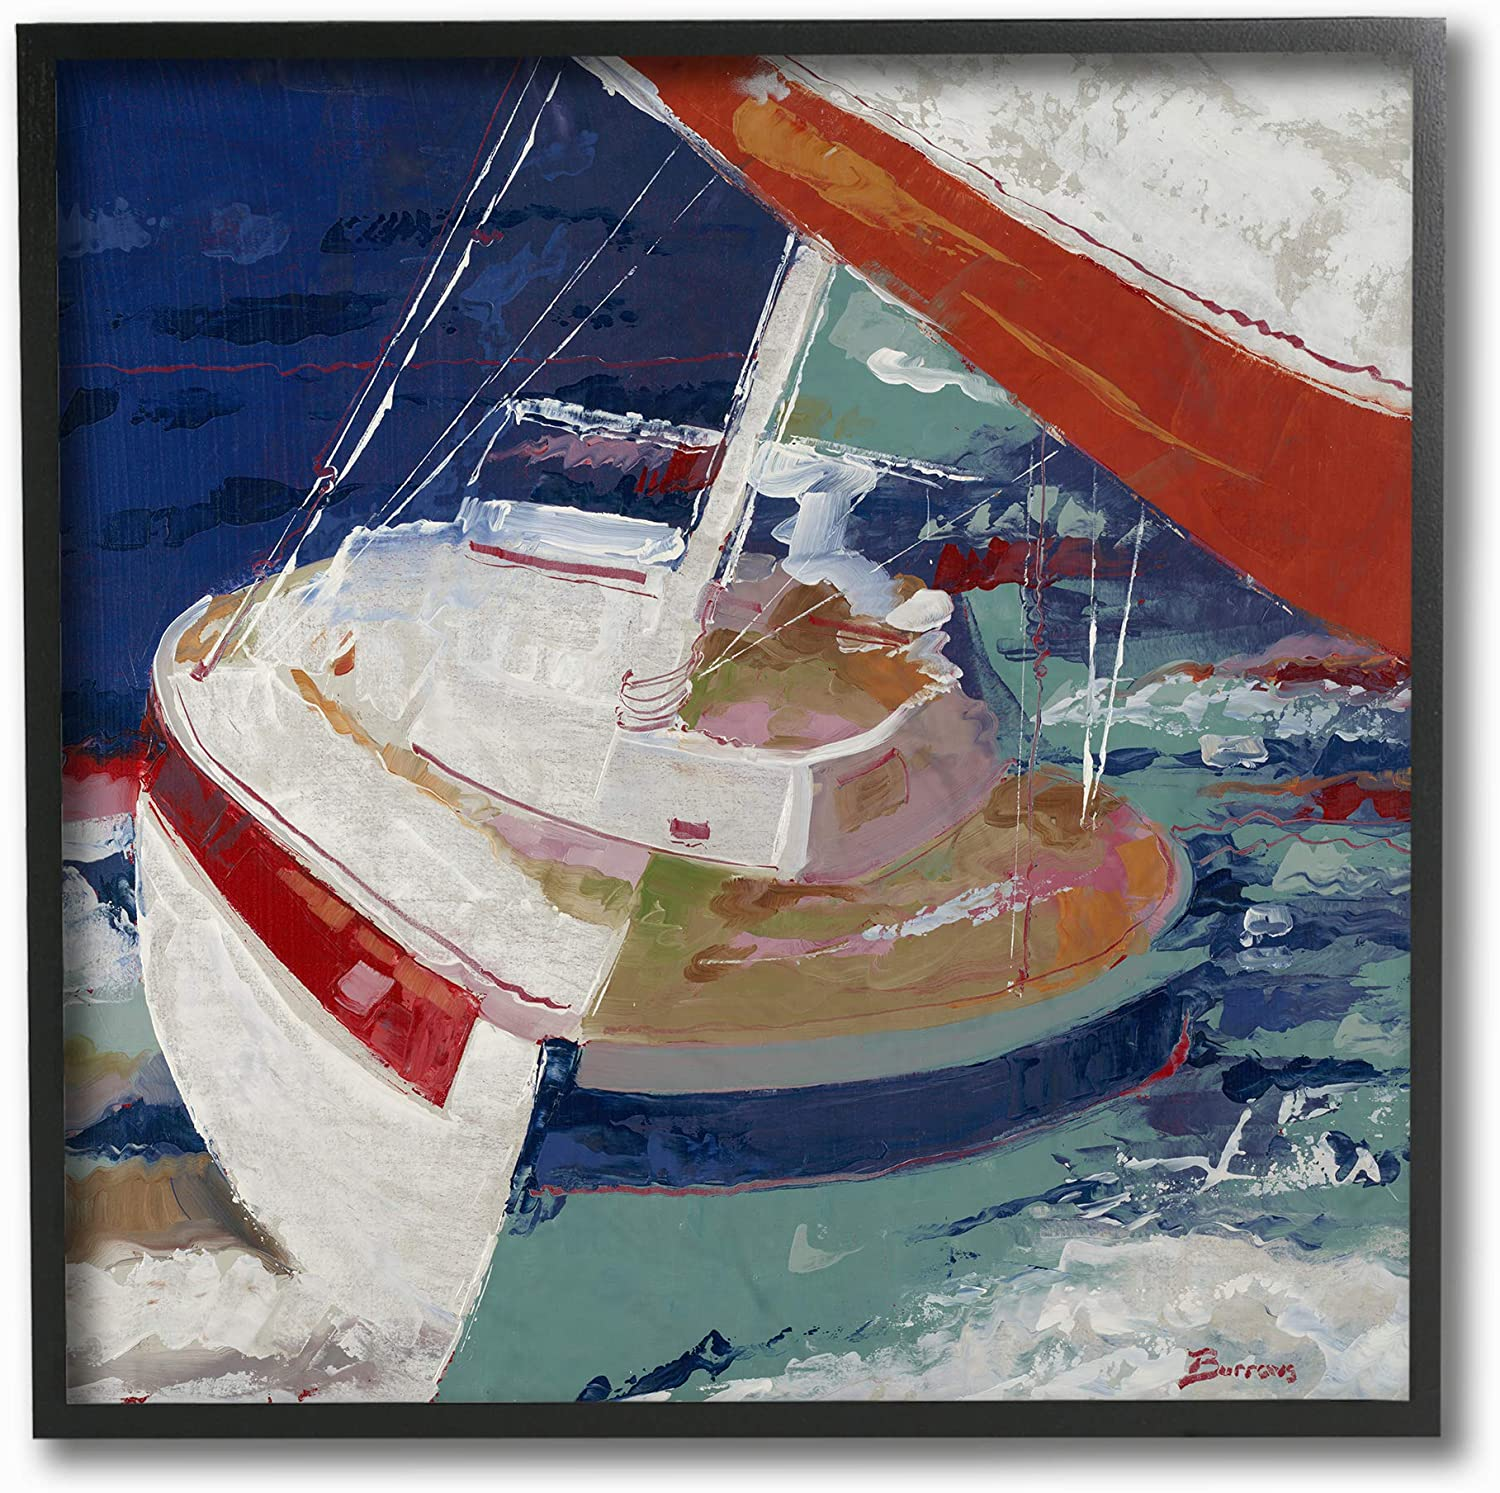 Stupell Industries Home Red White and bluee Sailboat Rocking in The Ocean Close Up Painting Framed Giclee Texturized Art, Multi-color